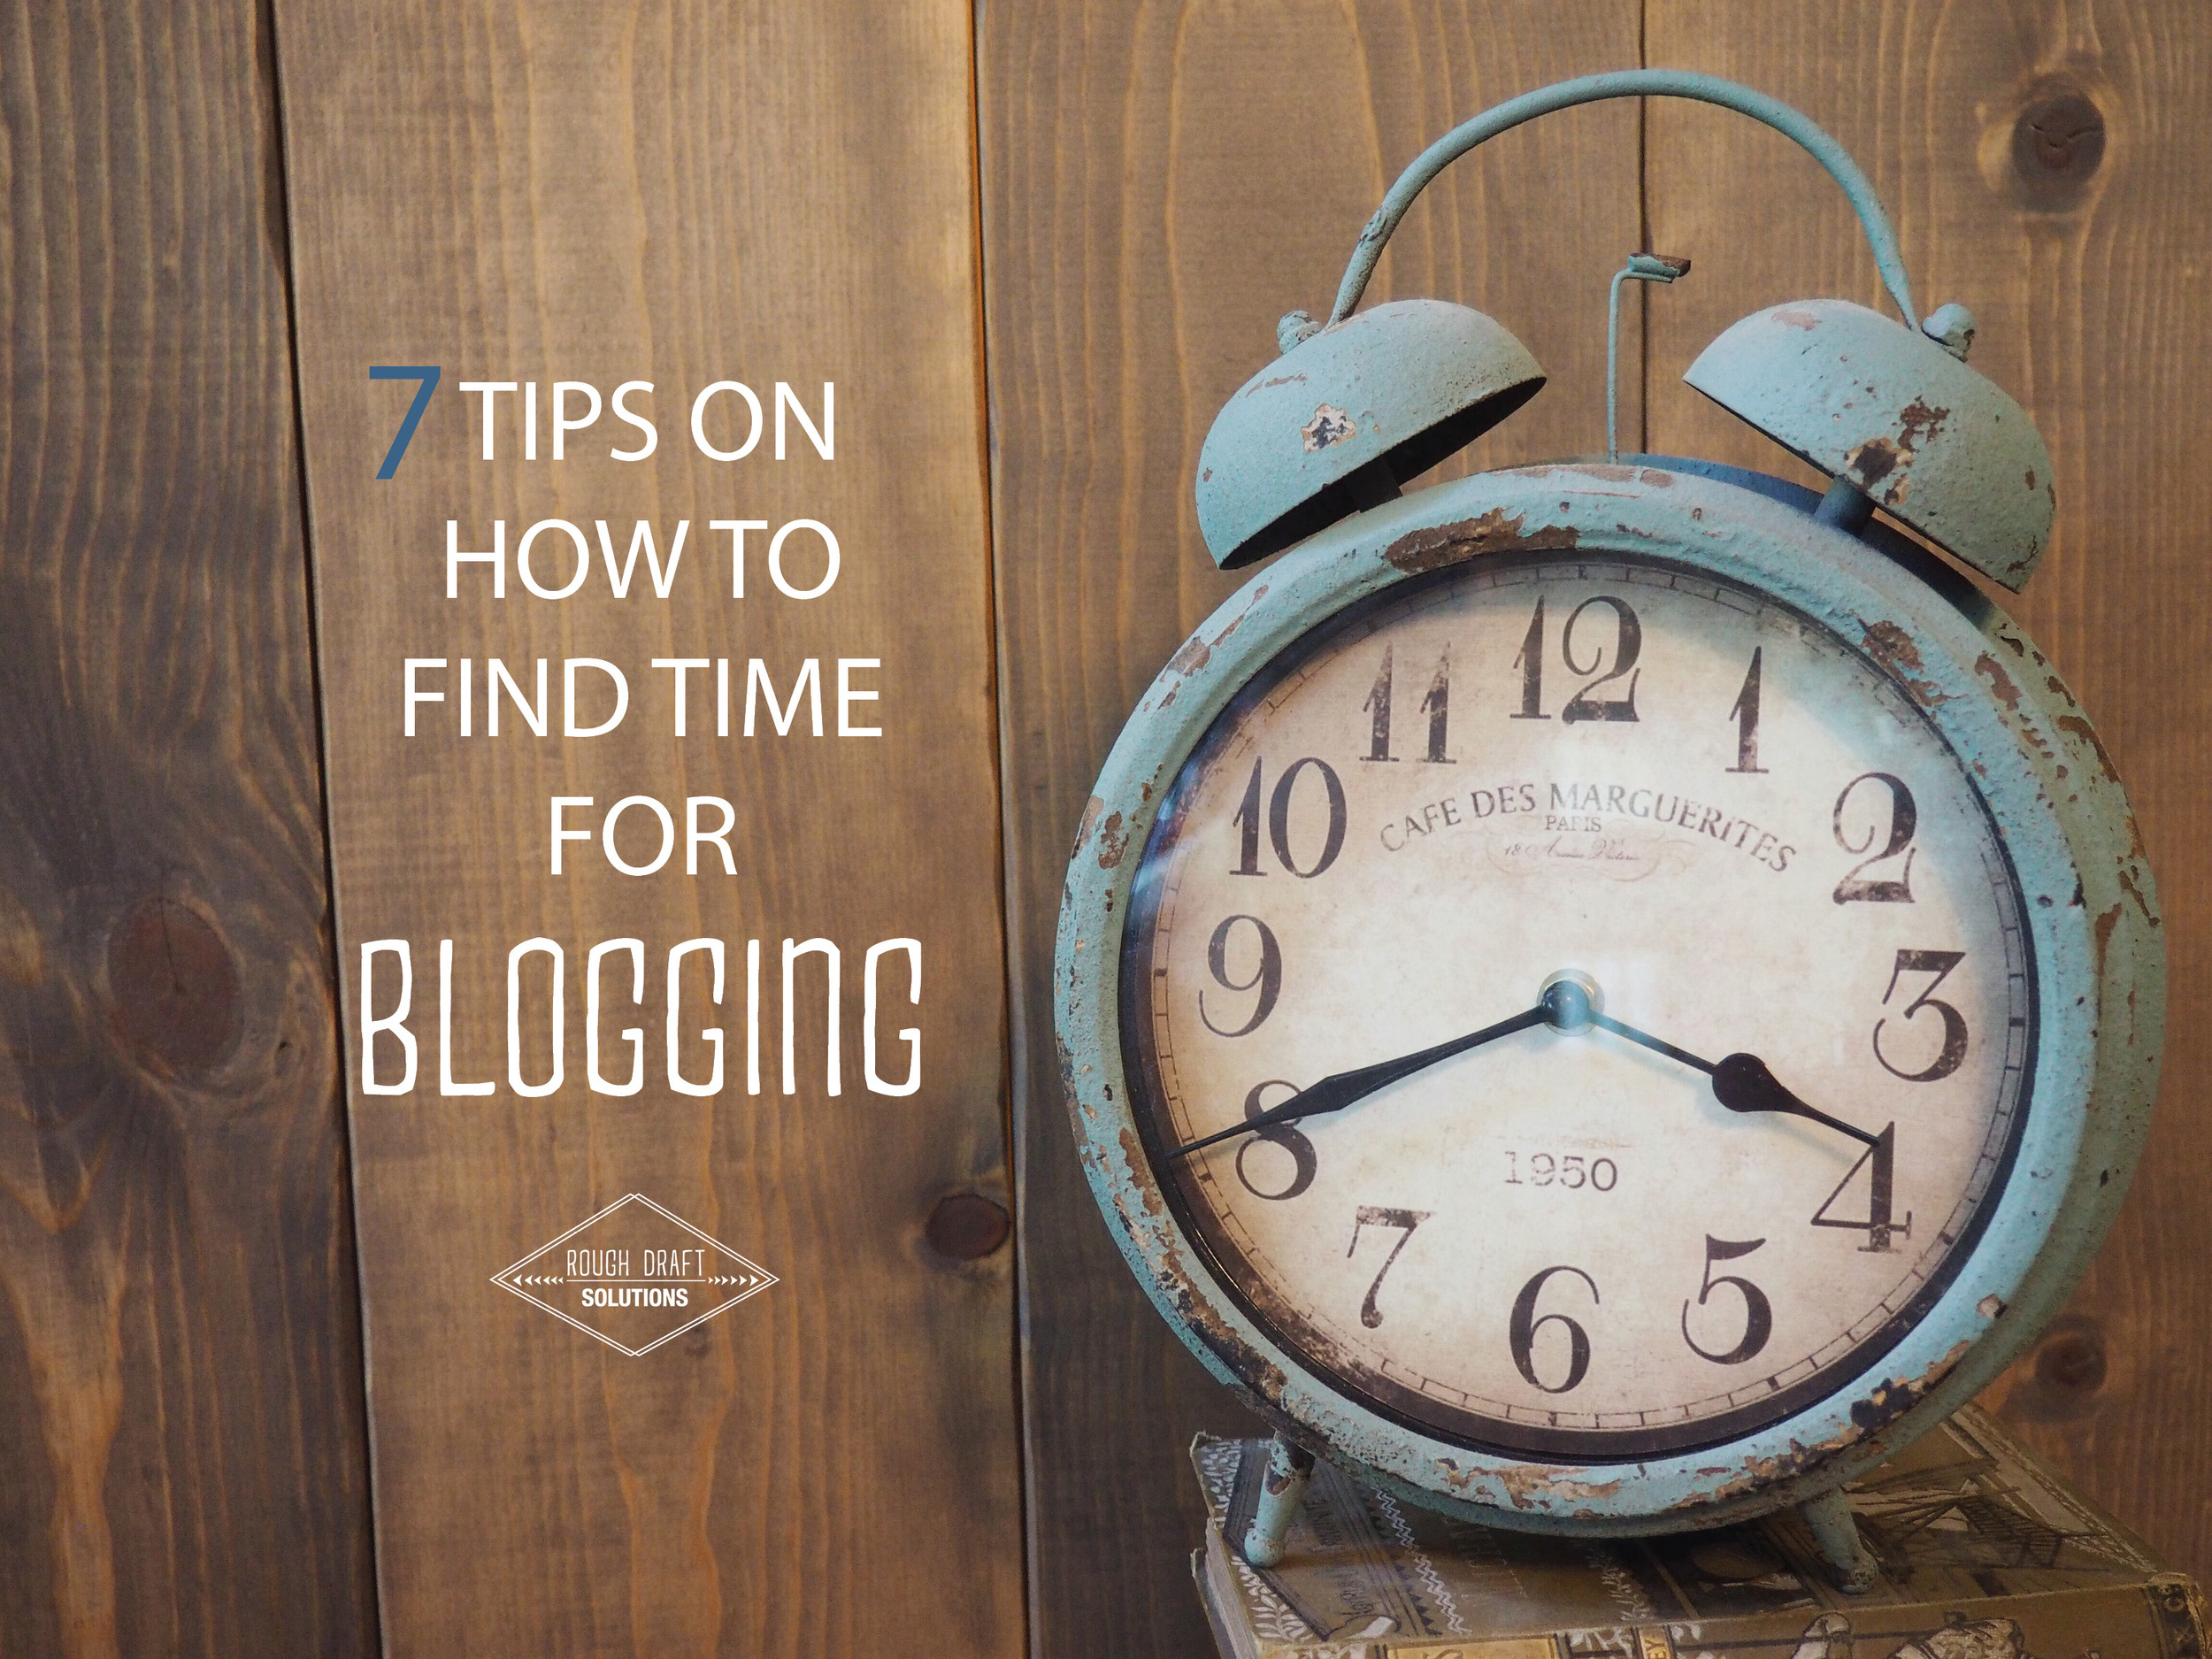 7 Tips on How to Find Time for Blogging